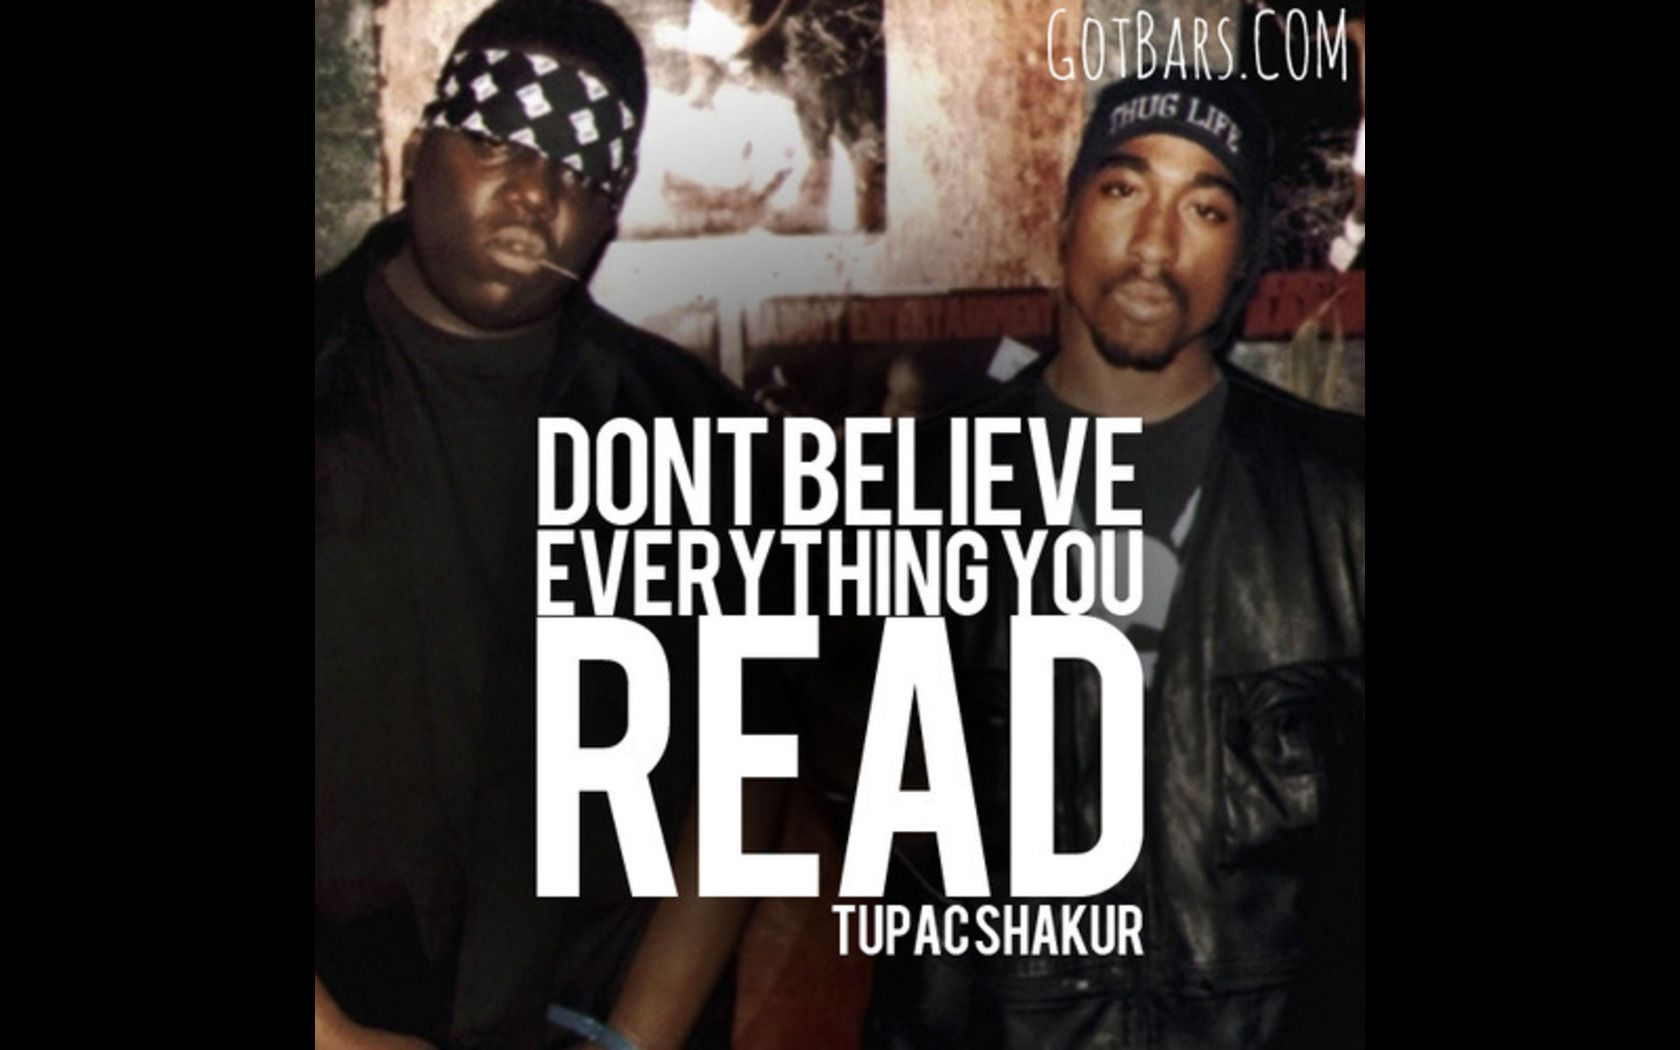 Tupac Shakur Quotes Pictures Quotes Tupac Shakur Quotes Biggie Smalls Quotes Biggie Quotes